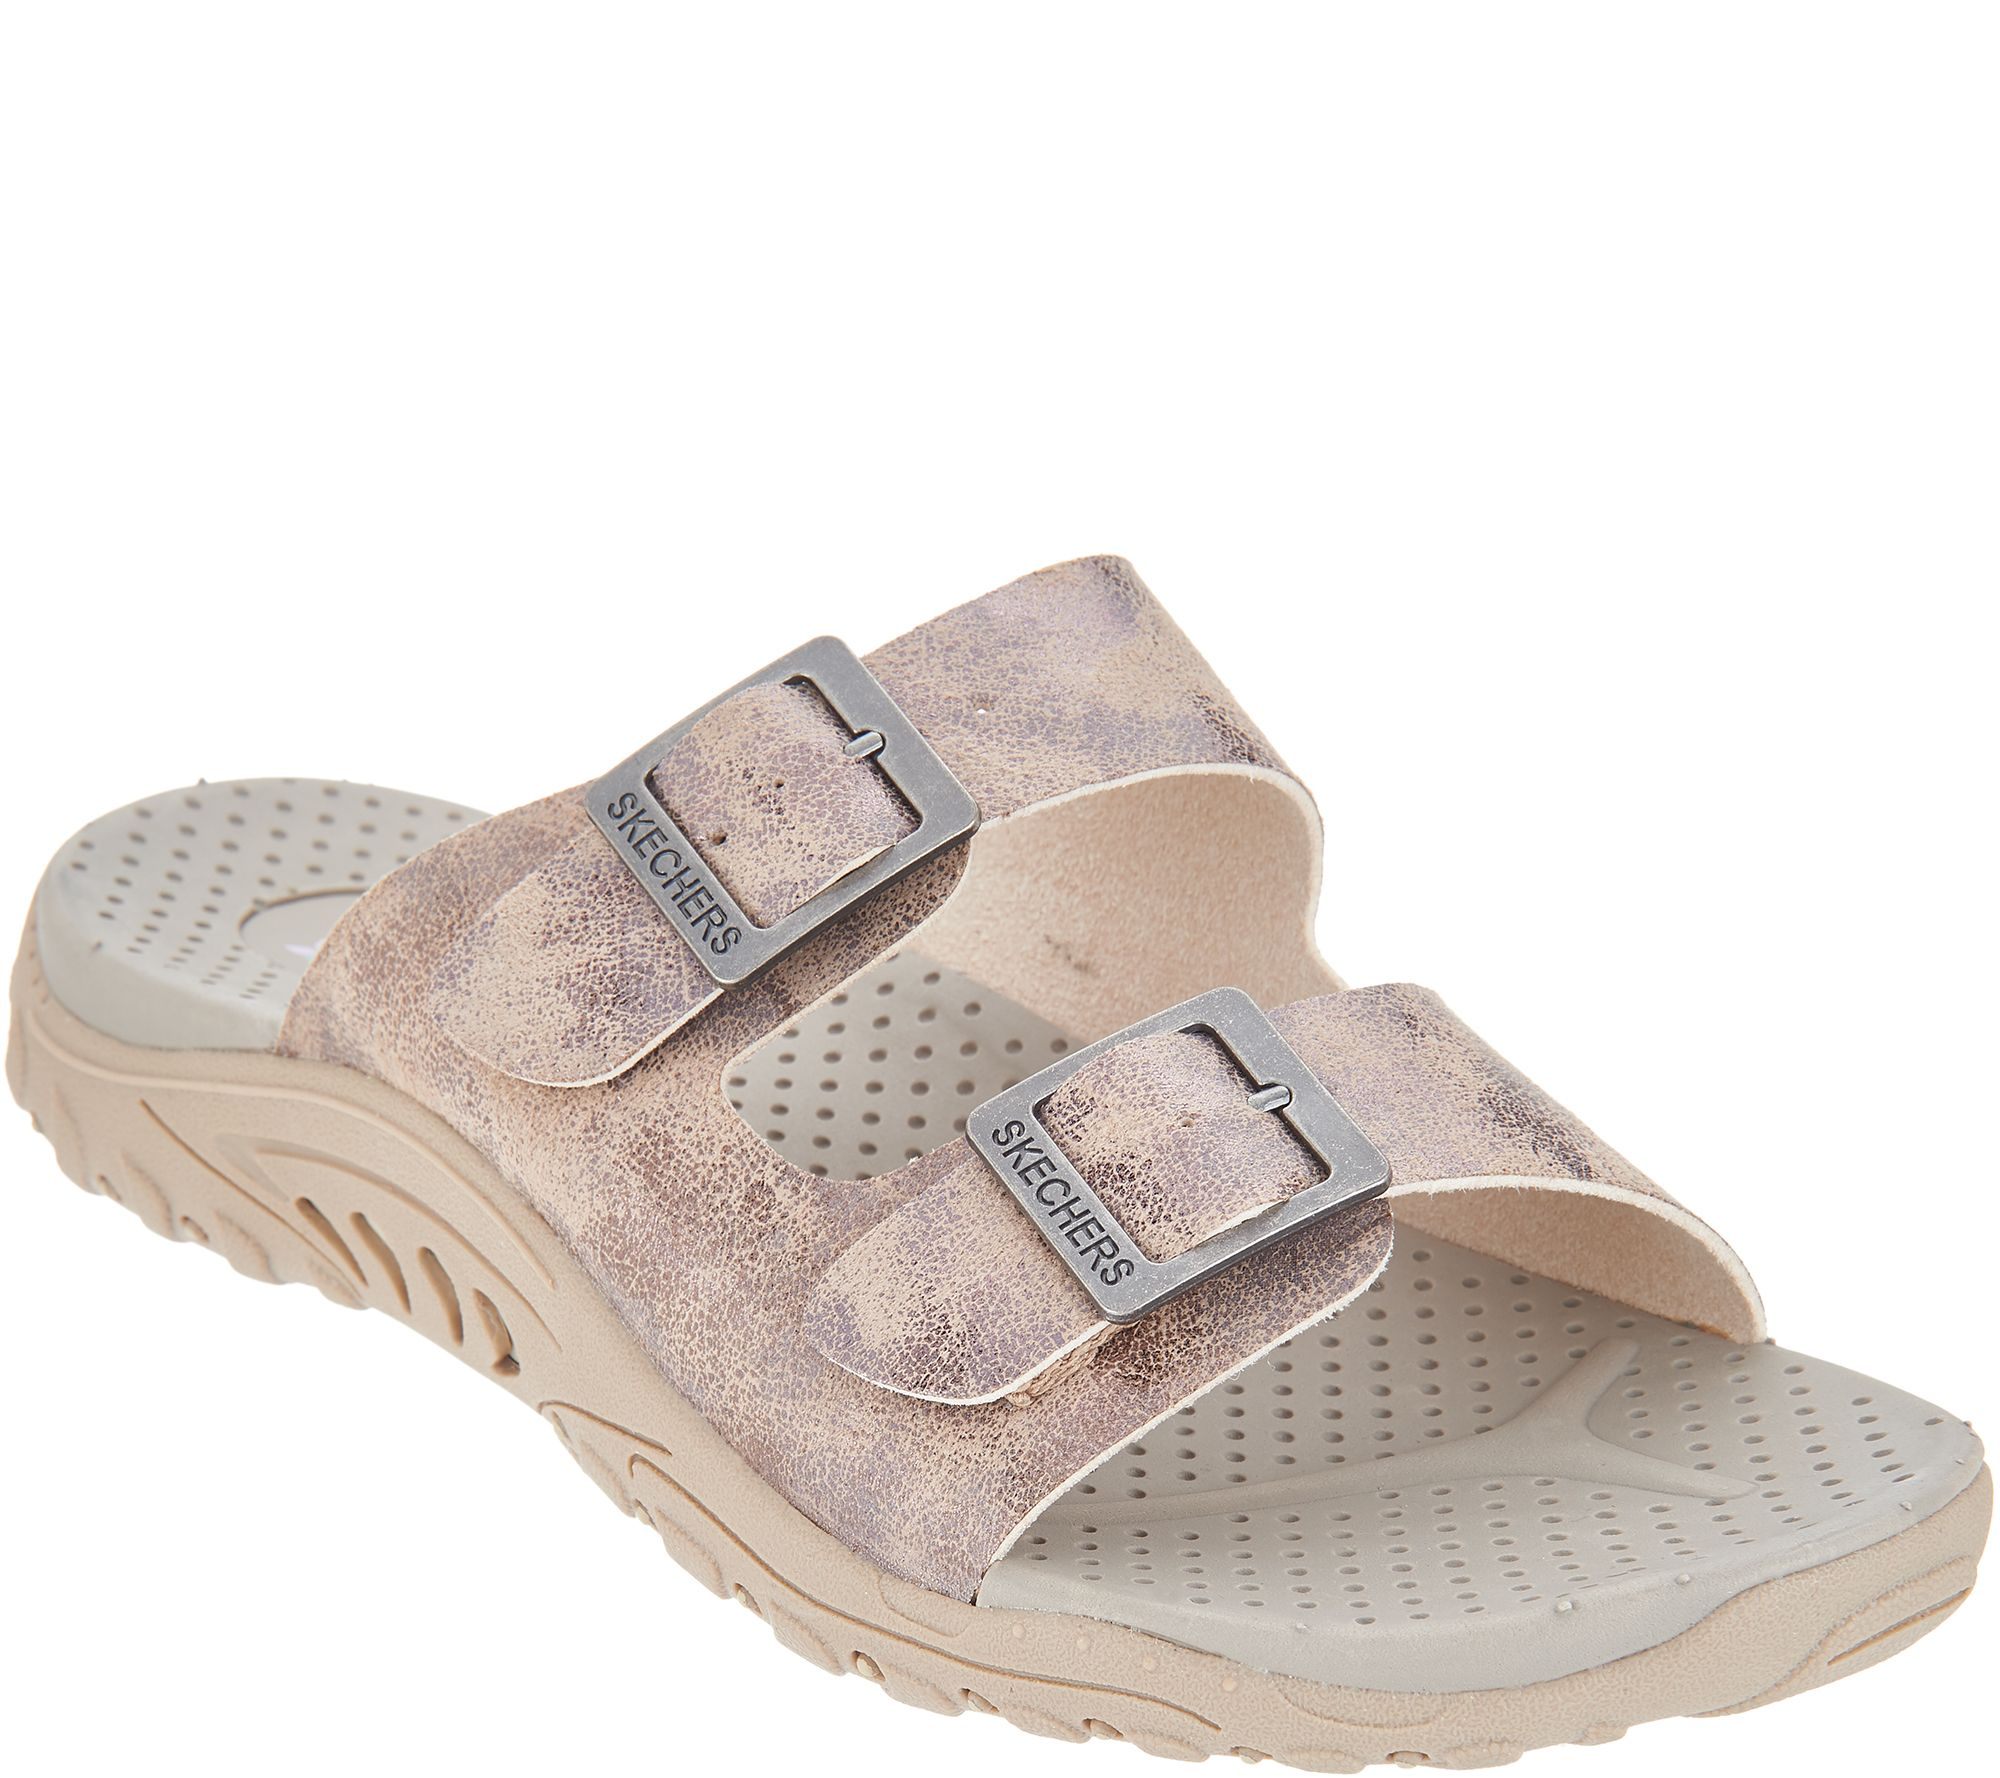 skechers sandals qvc